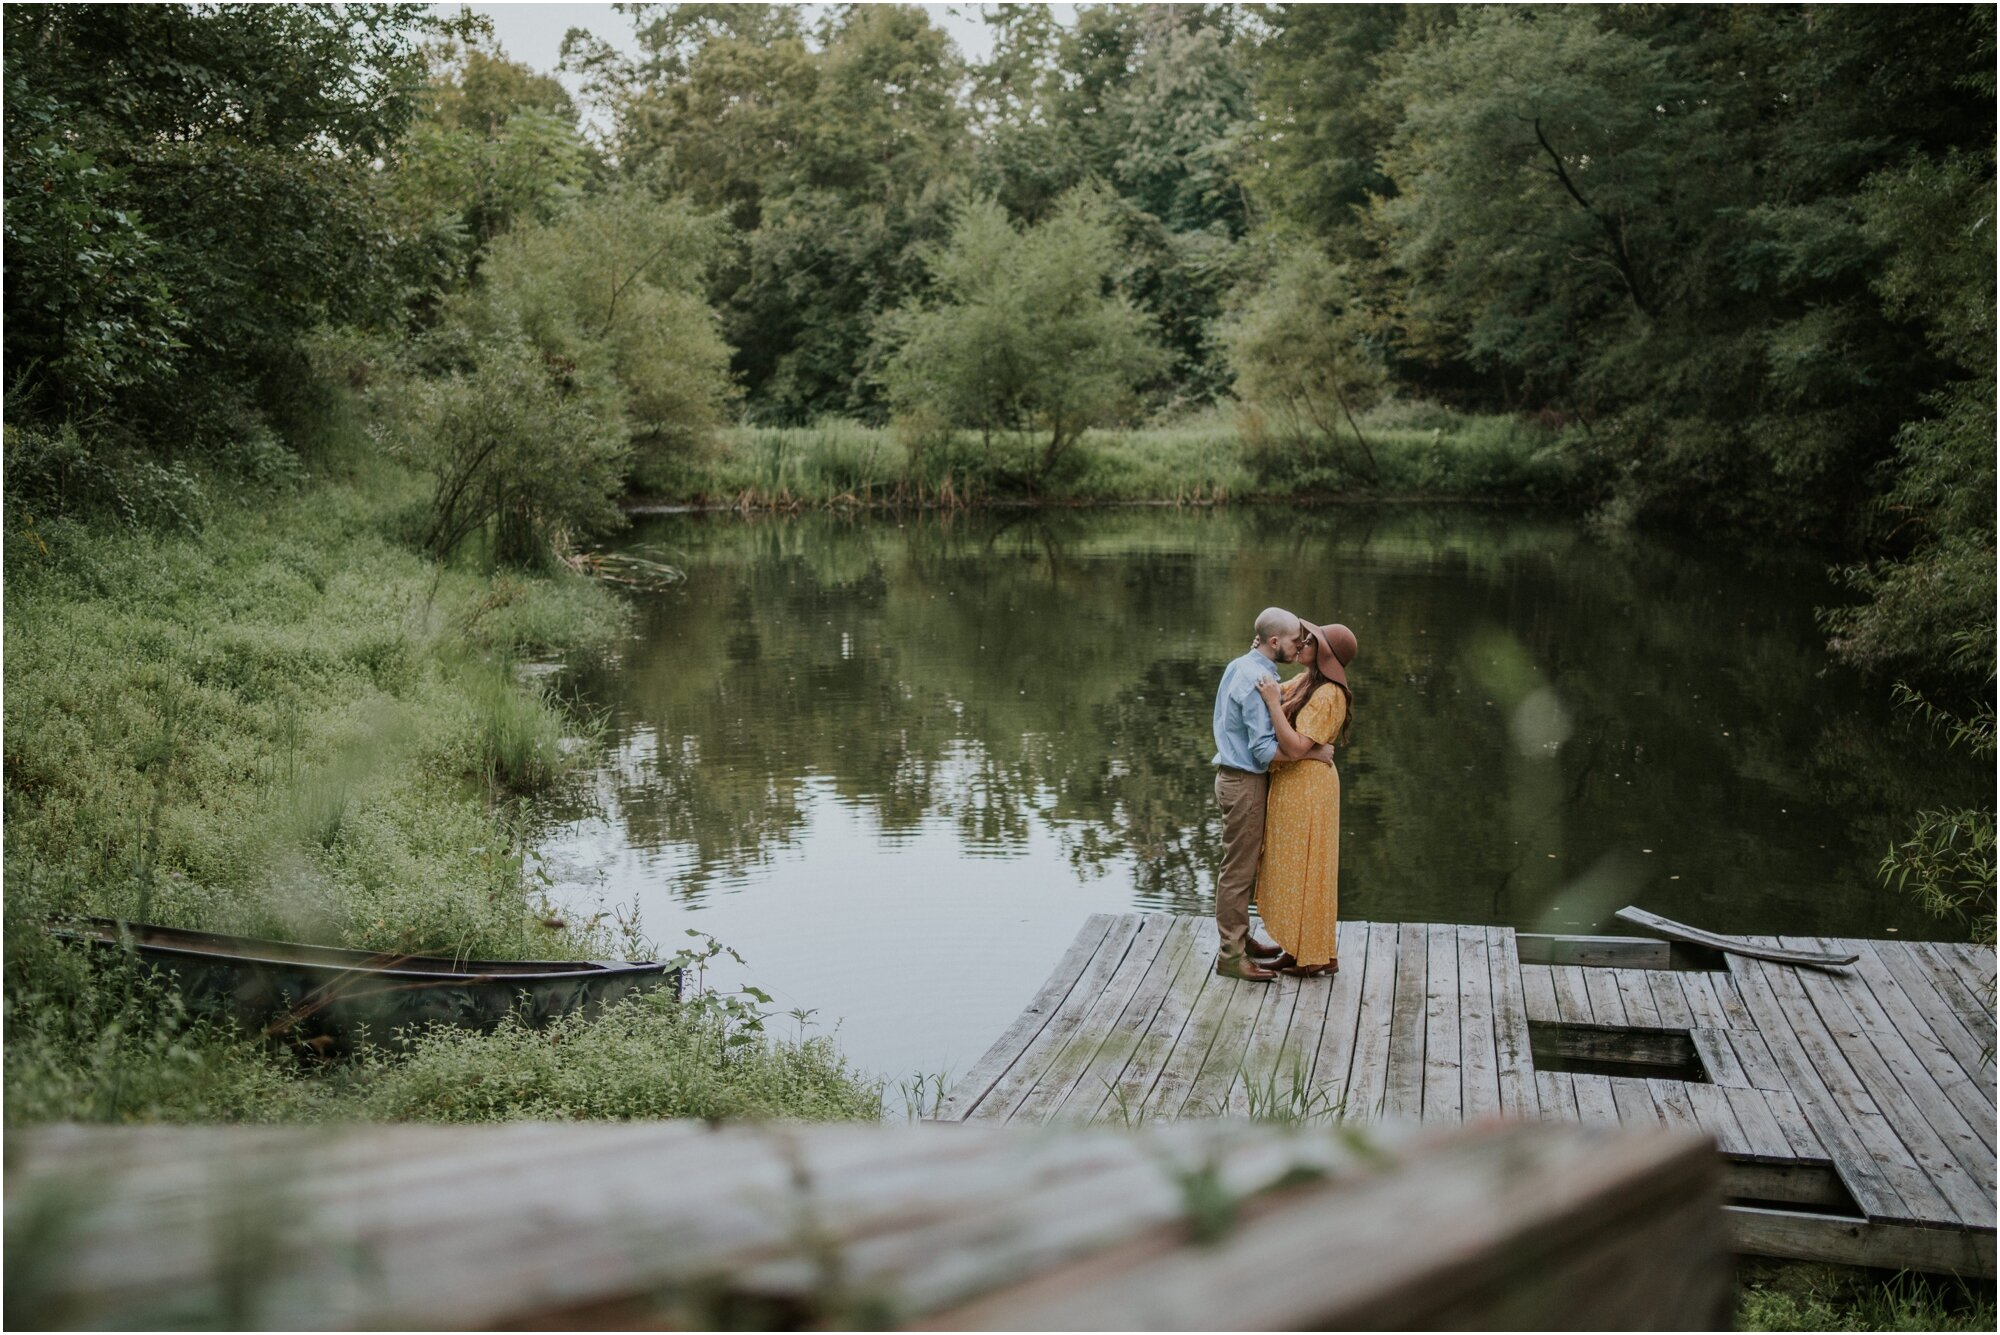 kingsport-tennessee-backyard-pond-bays-mountain-summer-engagement-session_0033.jpg